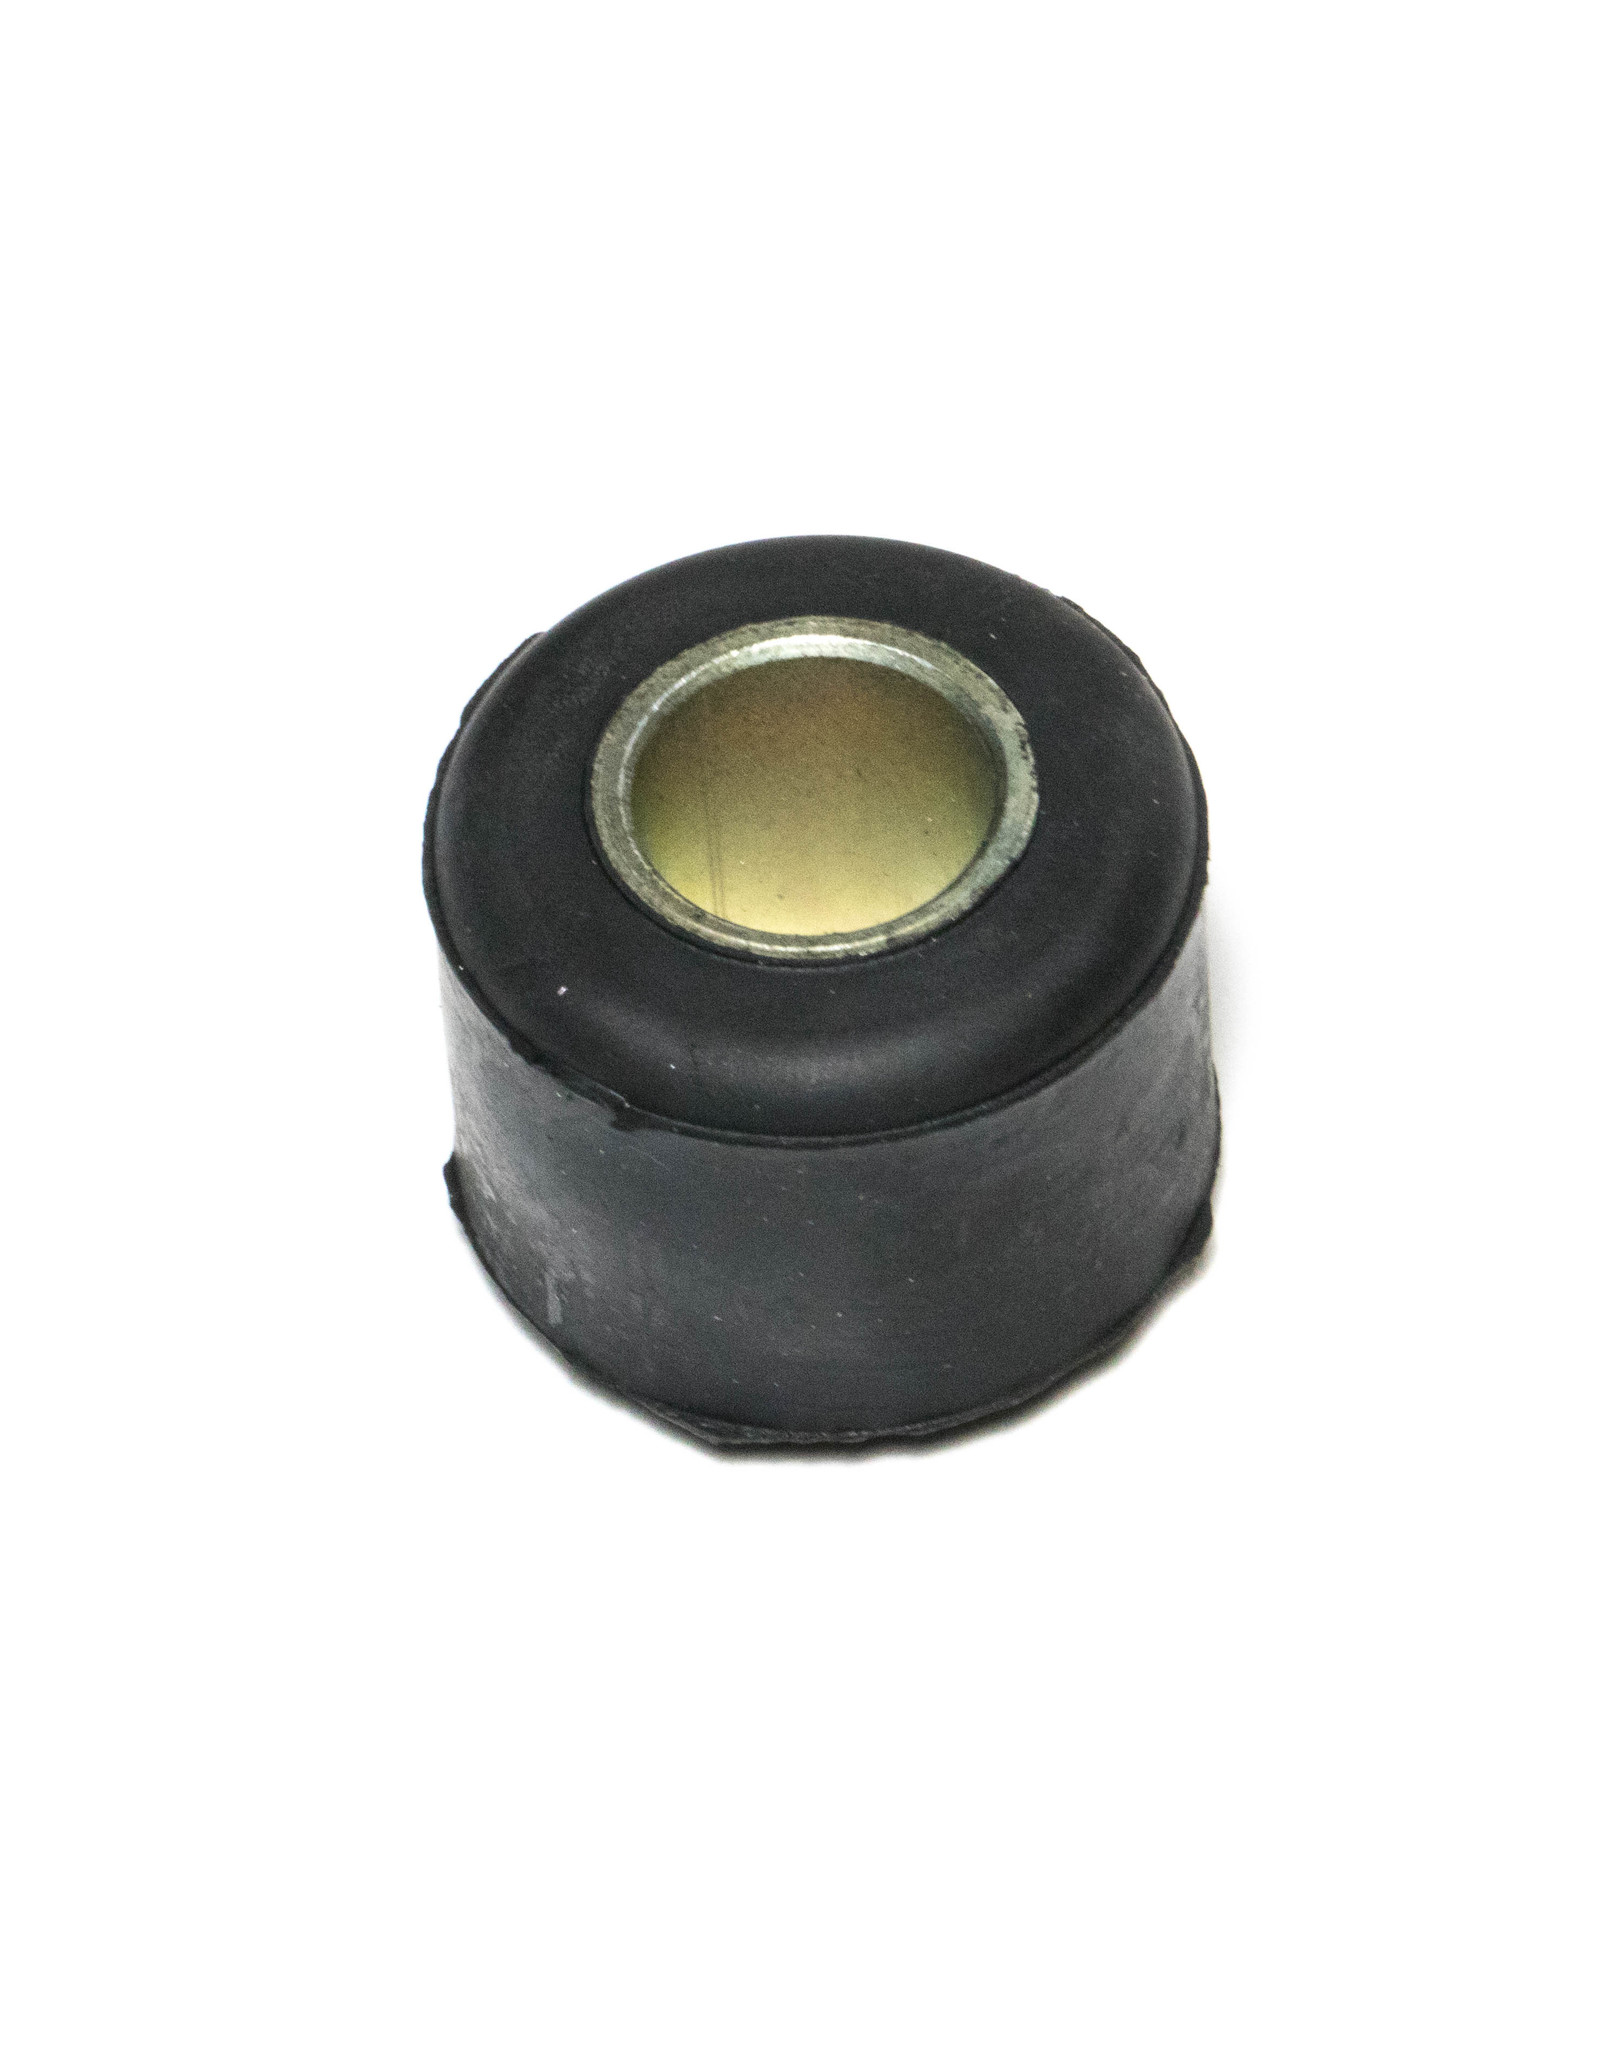 Cush Drive Rubbers Flexible coupling rubber (STD) B043317